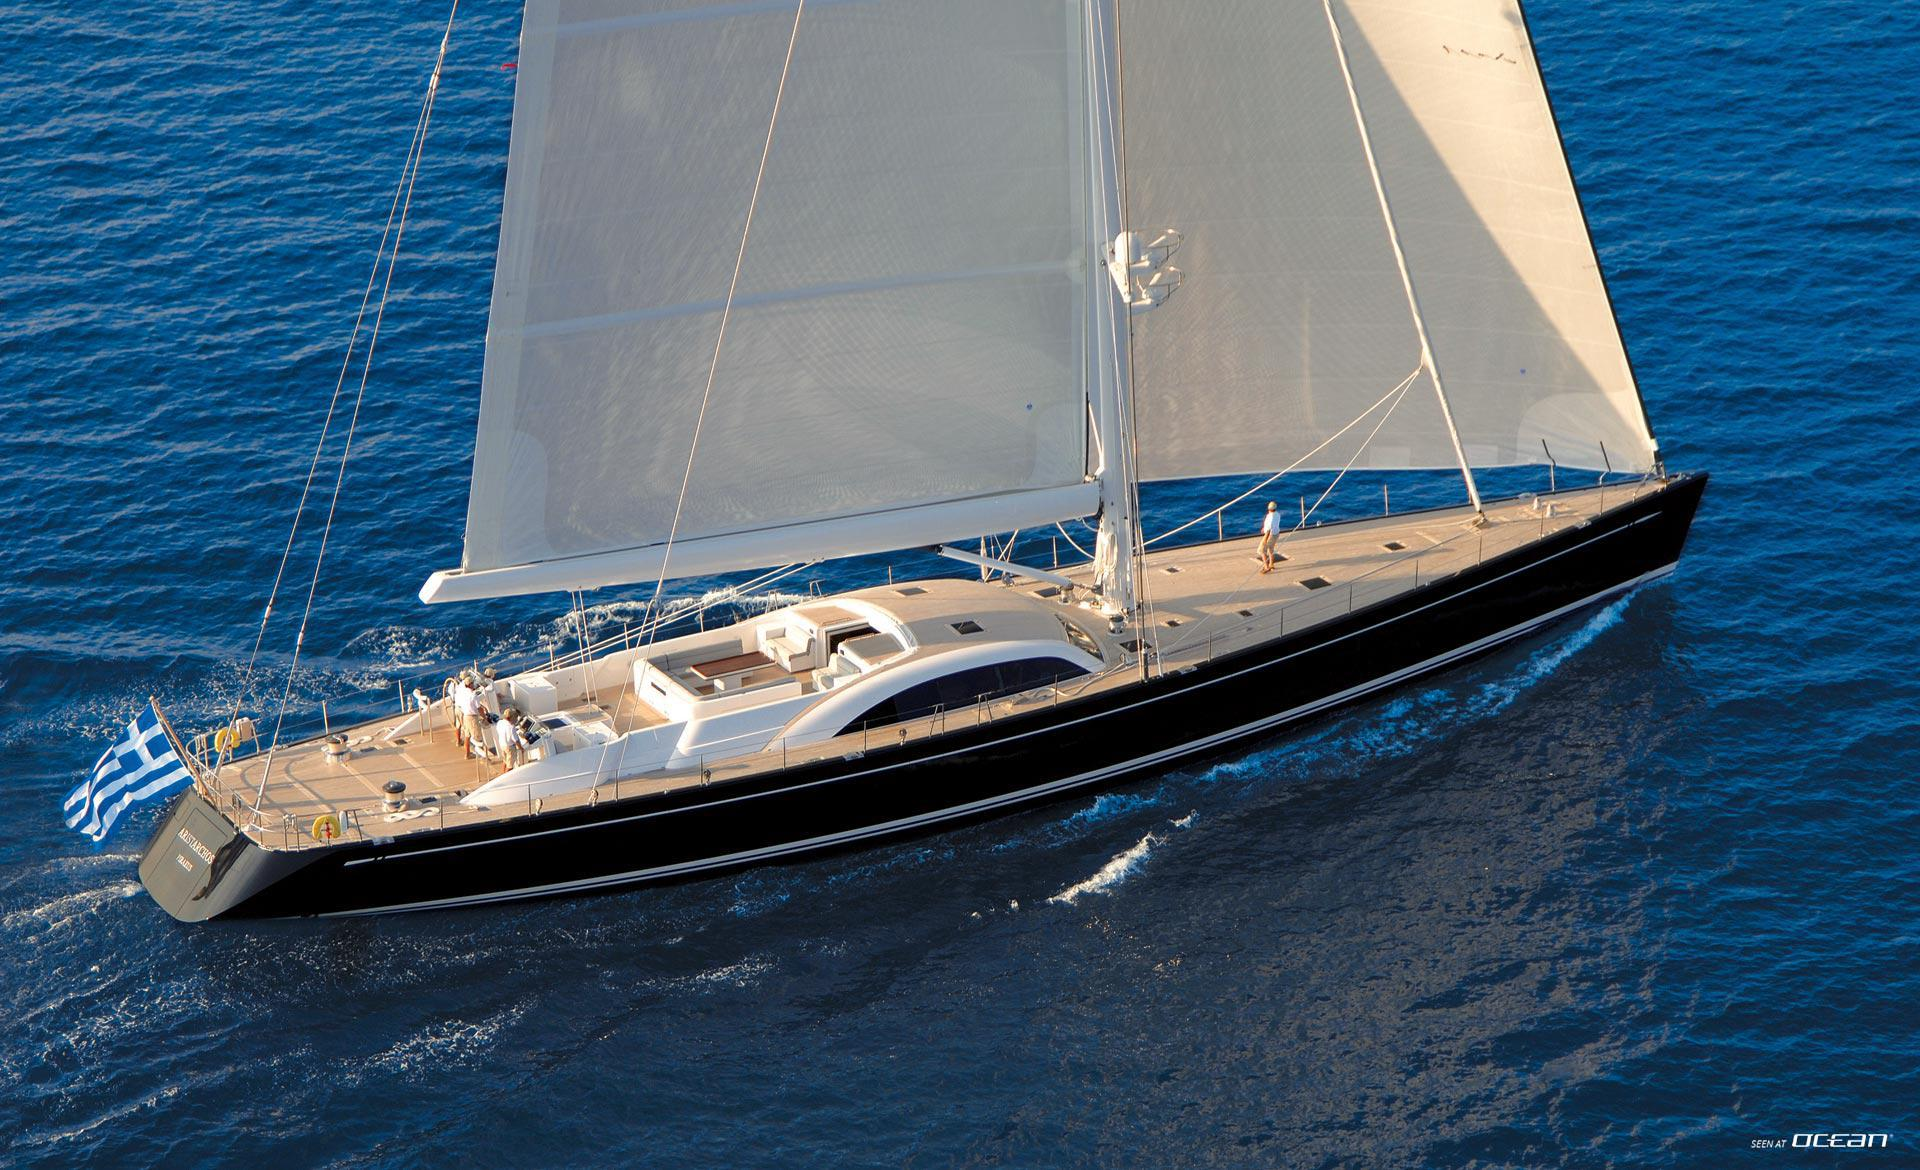 Yacht Charter – Motor yacht or sailboat for perfect ...